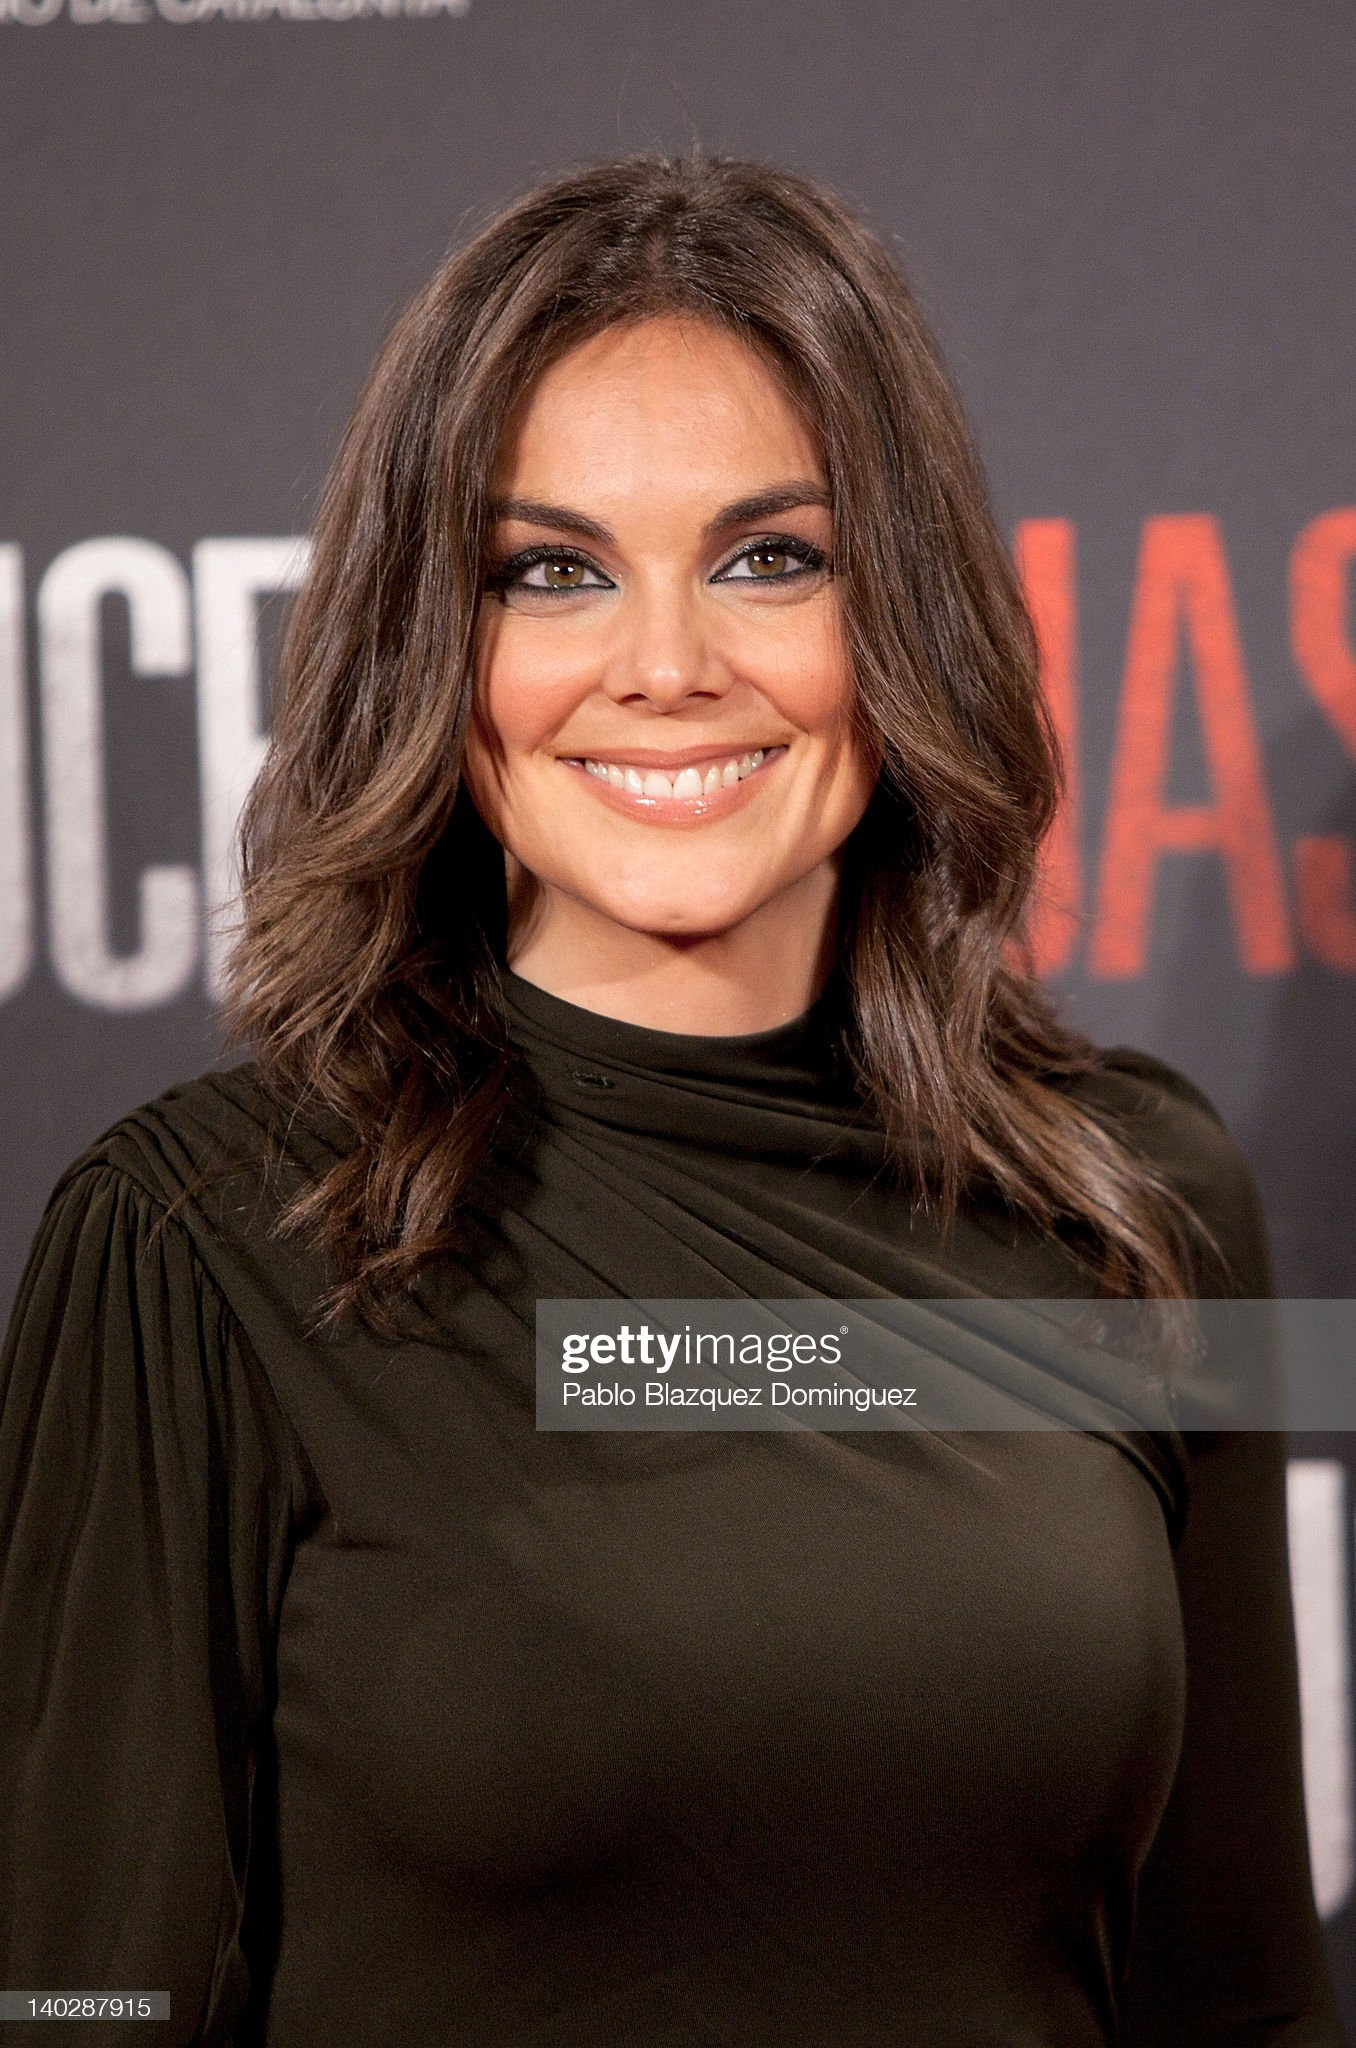 Hazel eyes - Personas famosas con los ojos de color AVELLANA Monica-carrillo-attends-the-red-lights-premiere-at-capitol-cinema-on-picture-id140287915?s=2048x2048